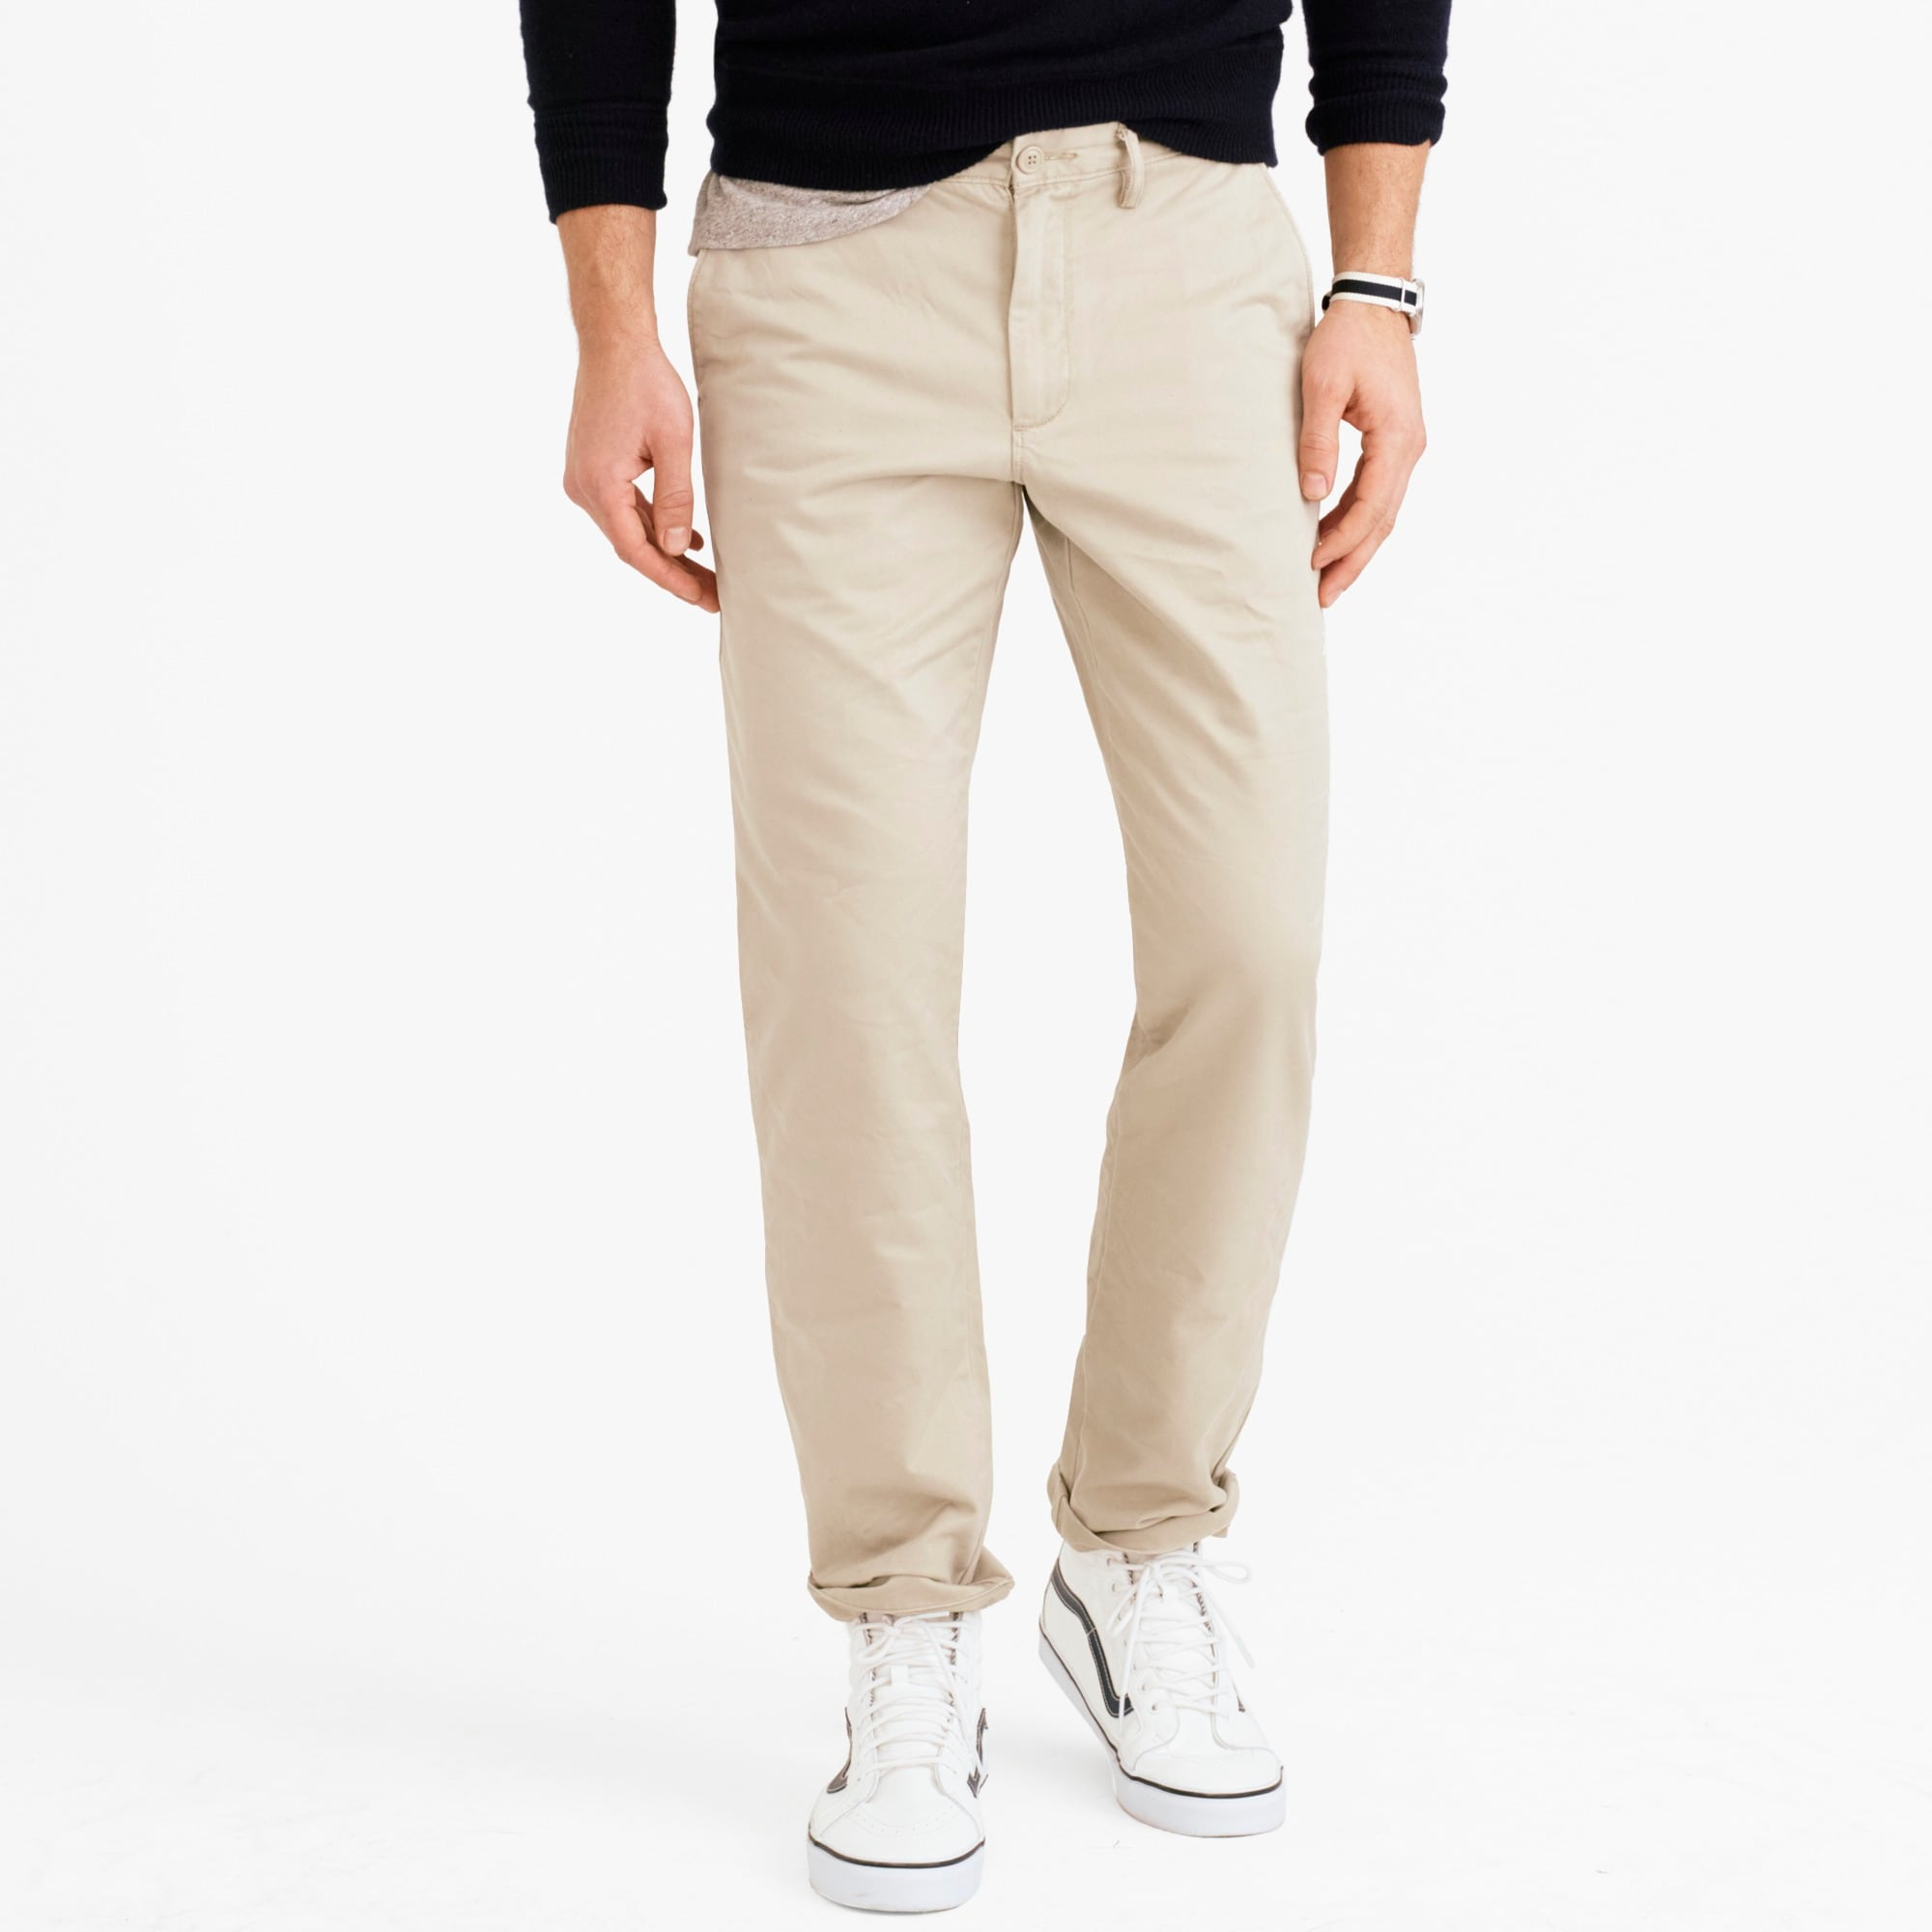 770 Straight-fit pant in Broken-in chino men pants c